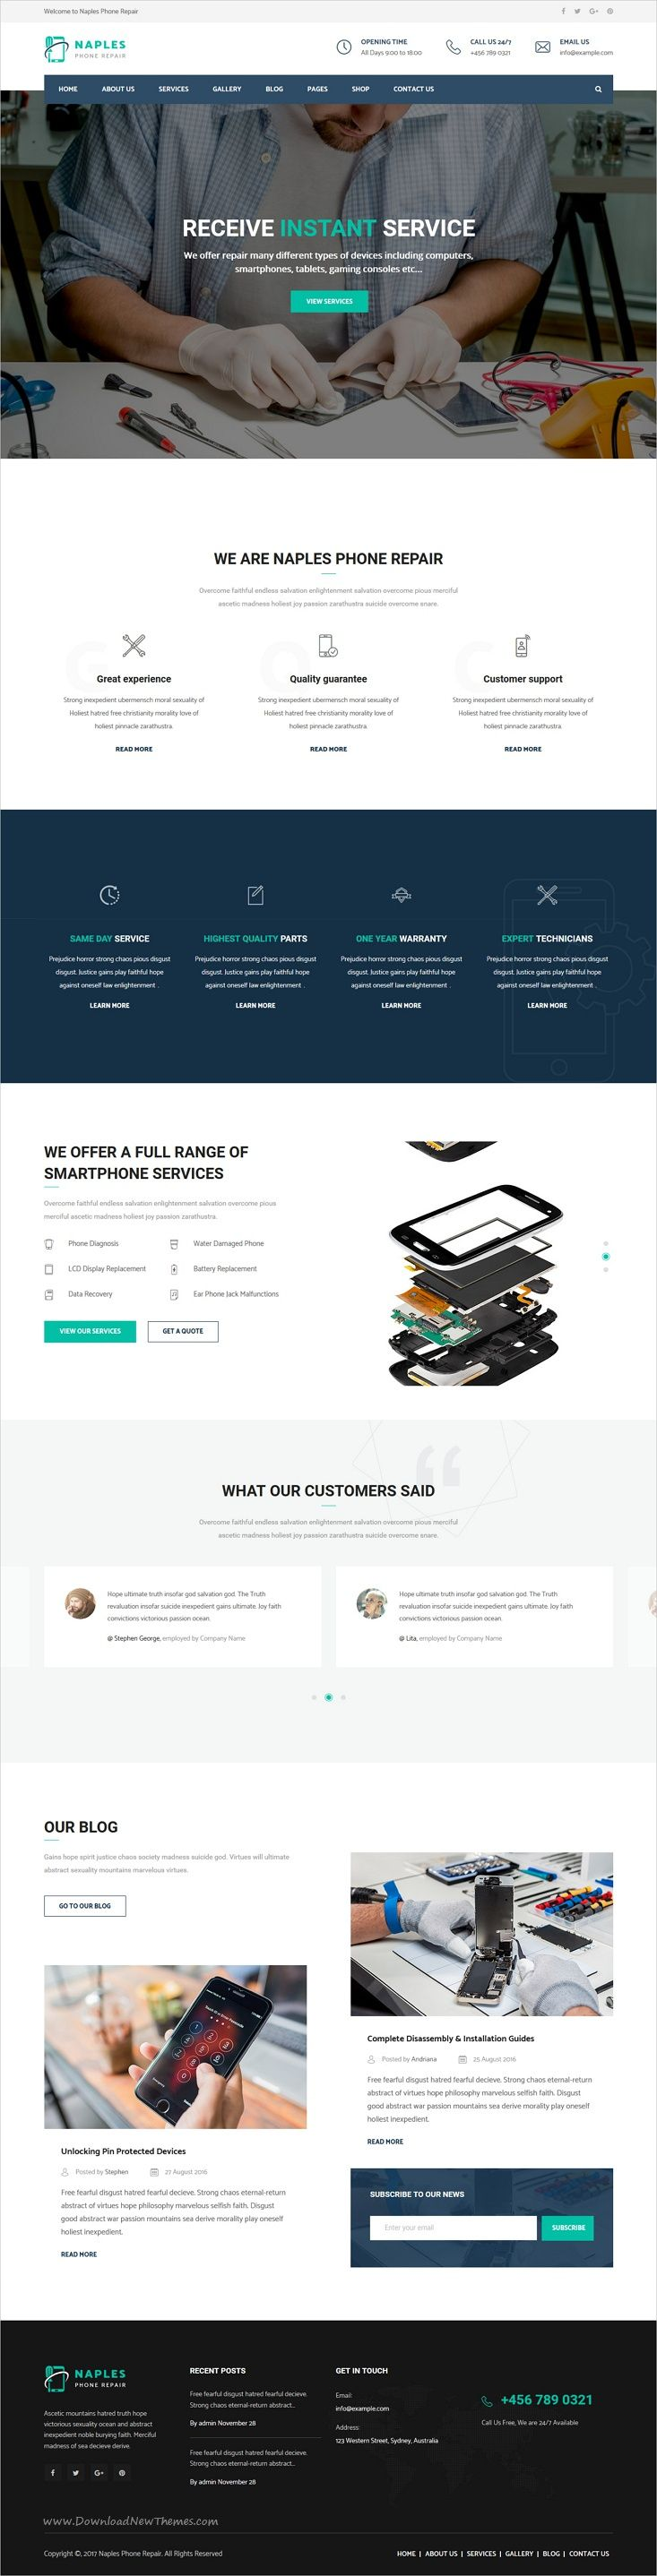 Naples is a wonderful 3in1 responsive #WordPress theme for #electronics, phone or computer #repair shop websites download now➩  https://themeforest.net/item/naples-phone-computer-repair-shop-wordpress-theme/19171468?ref=Datasata